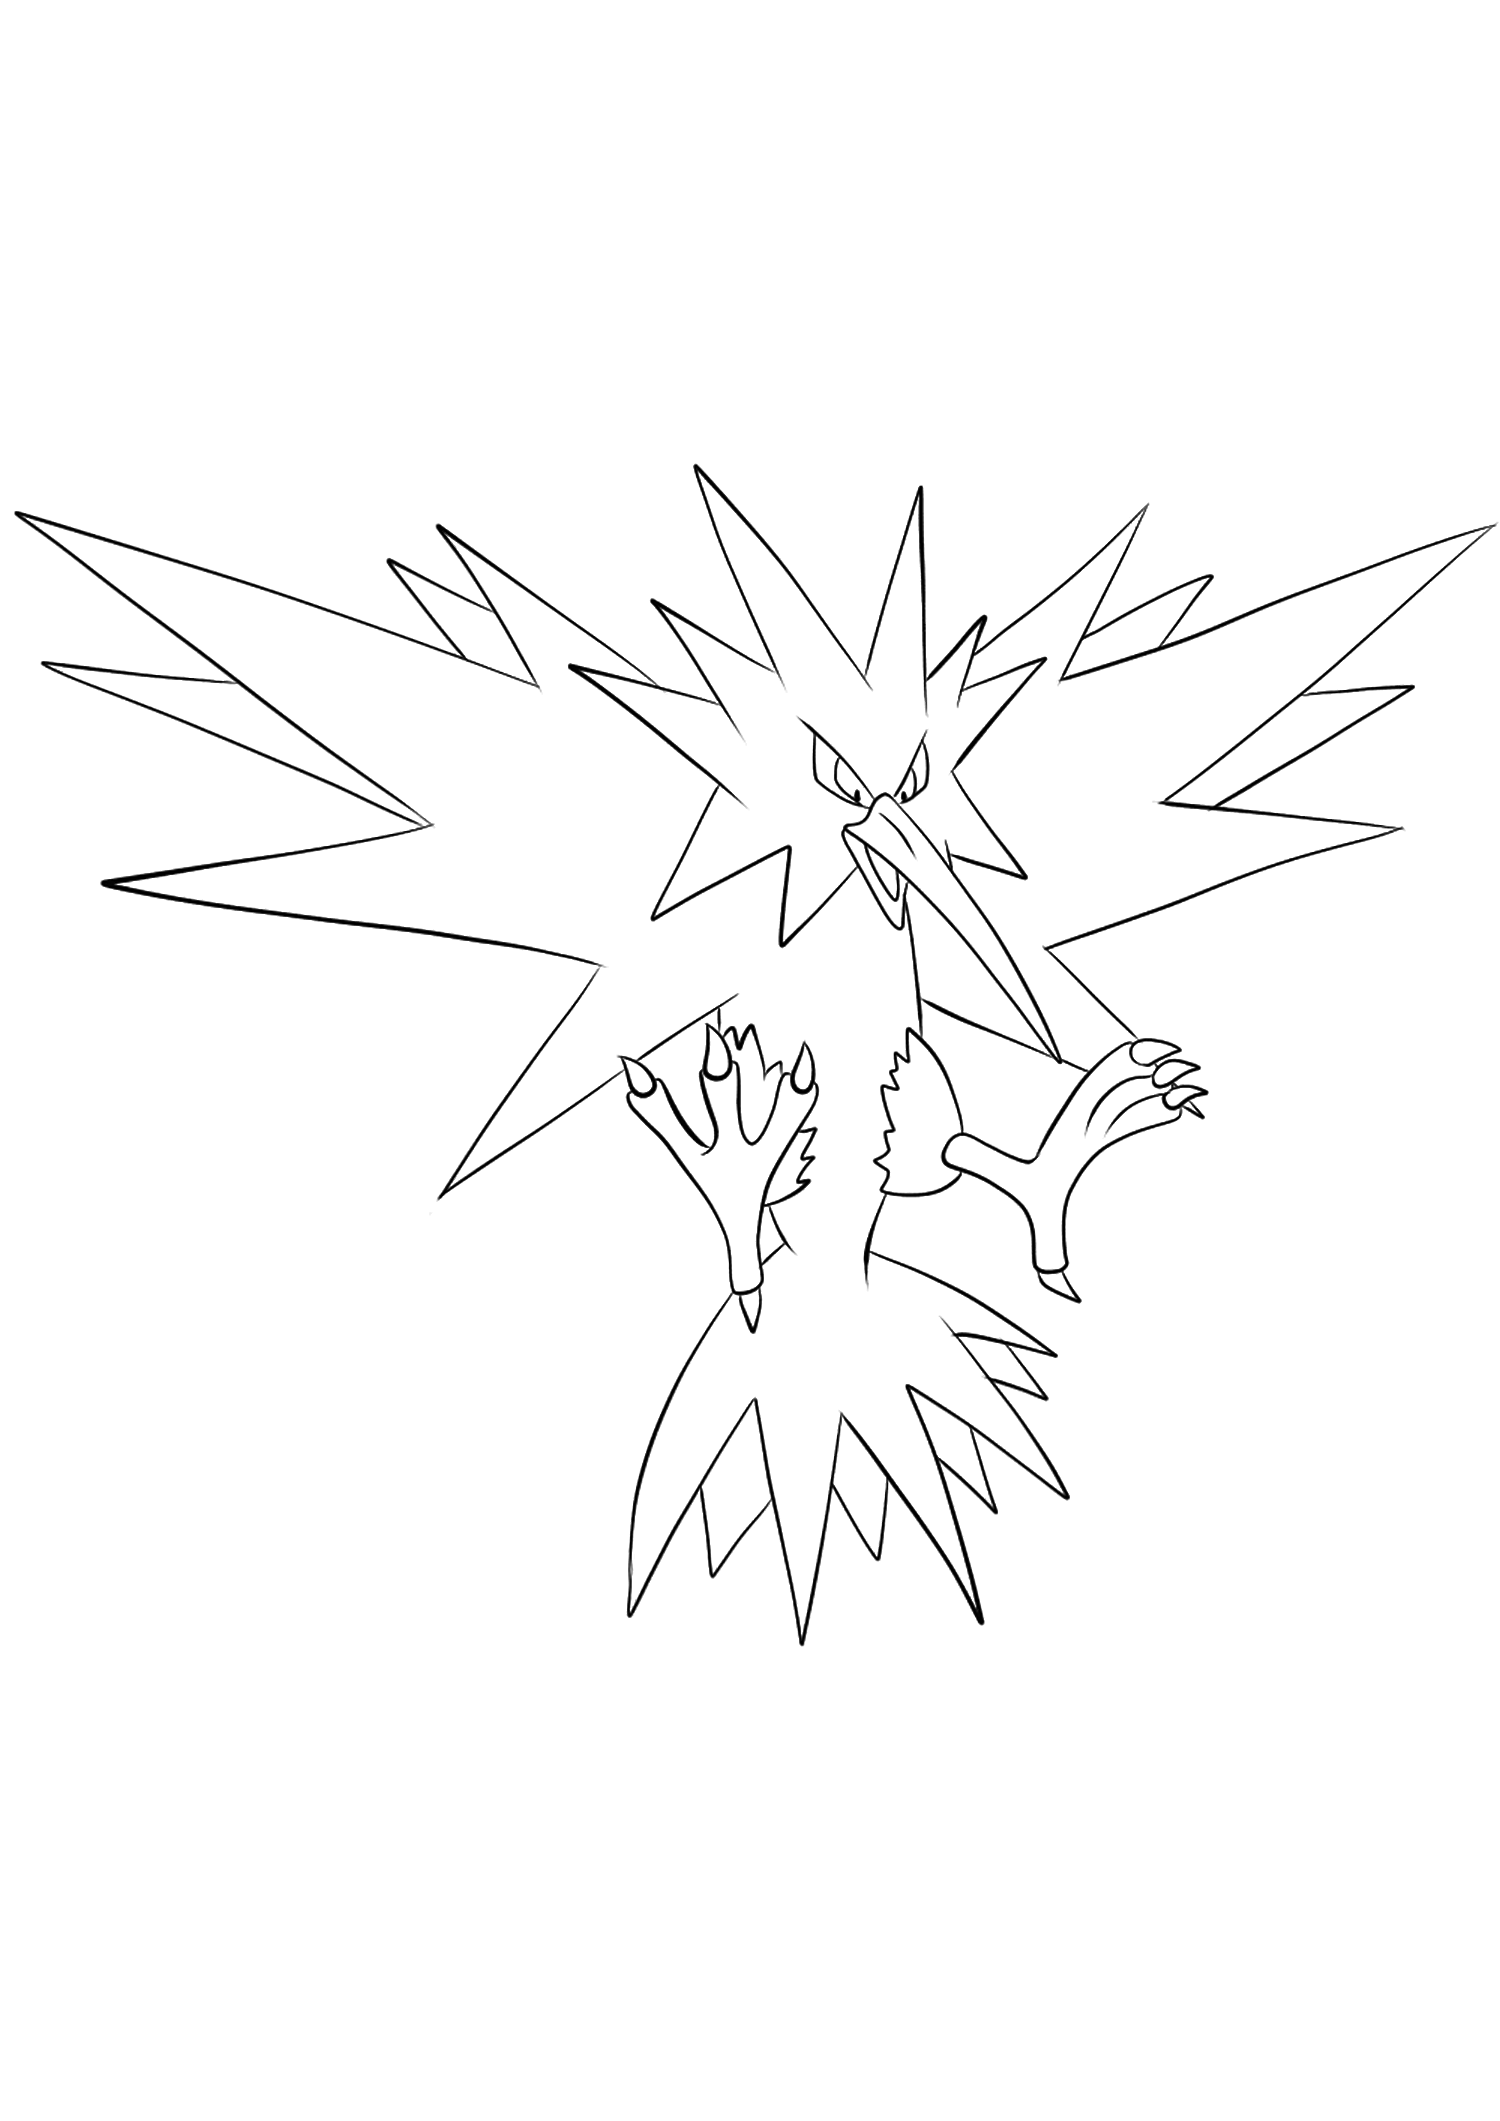 legendary zapdos pokemon coloring pages zapdos coloring page at getdrawings free download pages zapdos legendary pokemon coloring